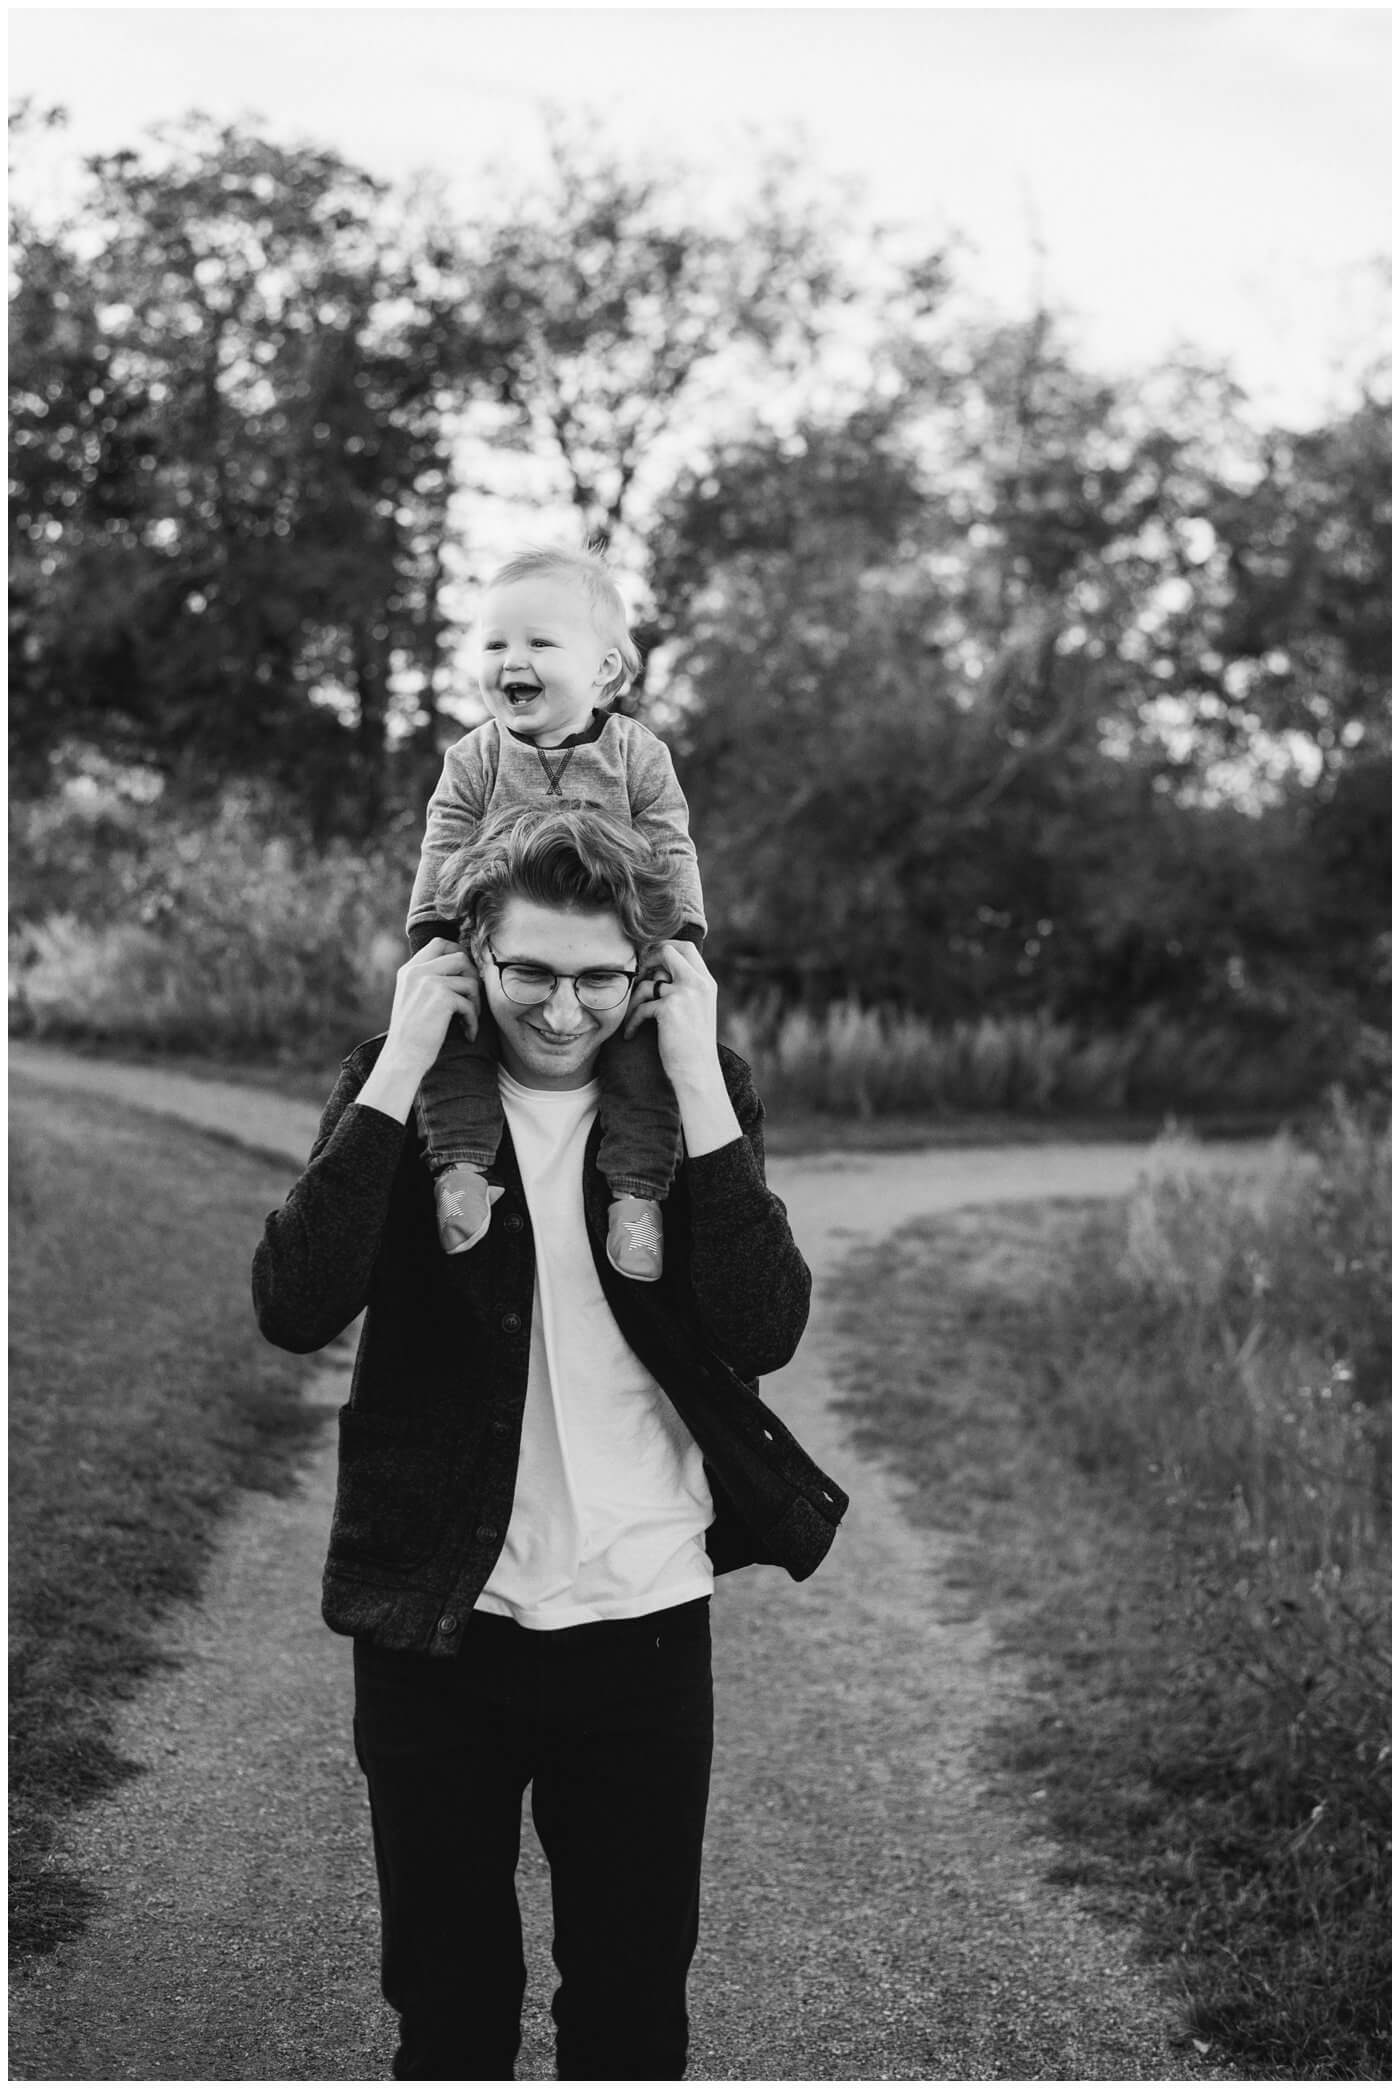 Regina-Family-Photography-McFie-family-009-Laughing-on-dads-shoulders